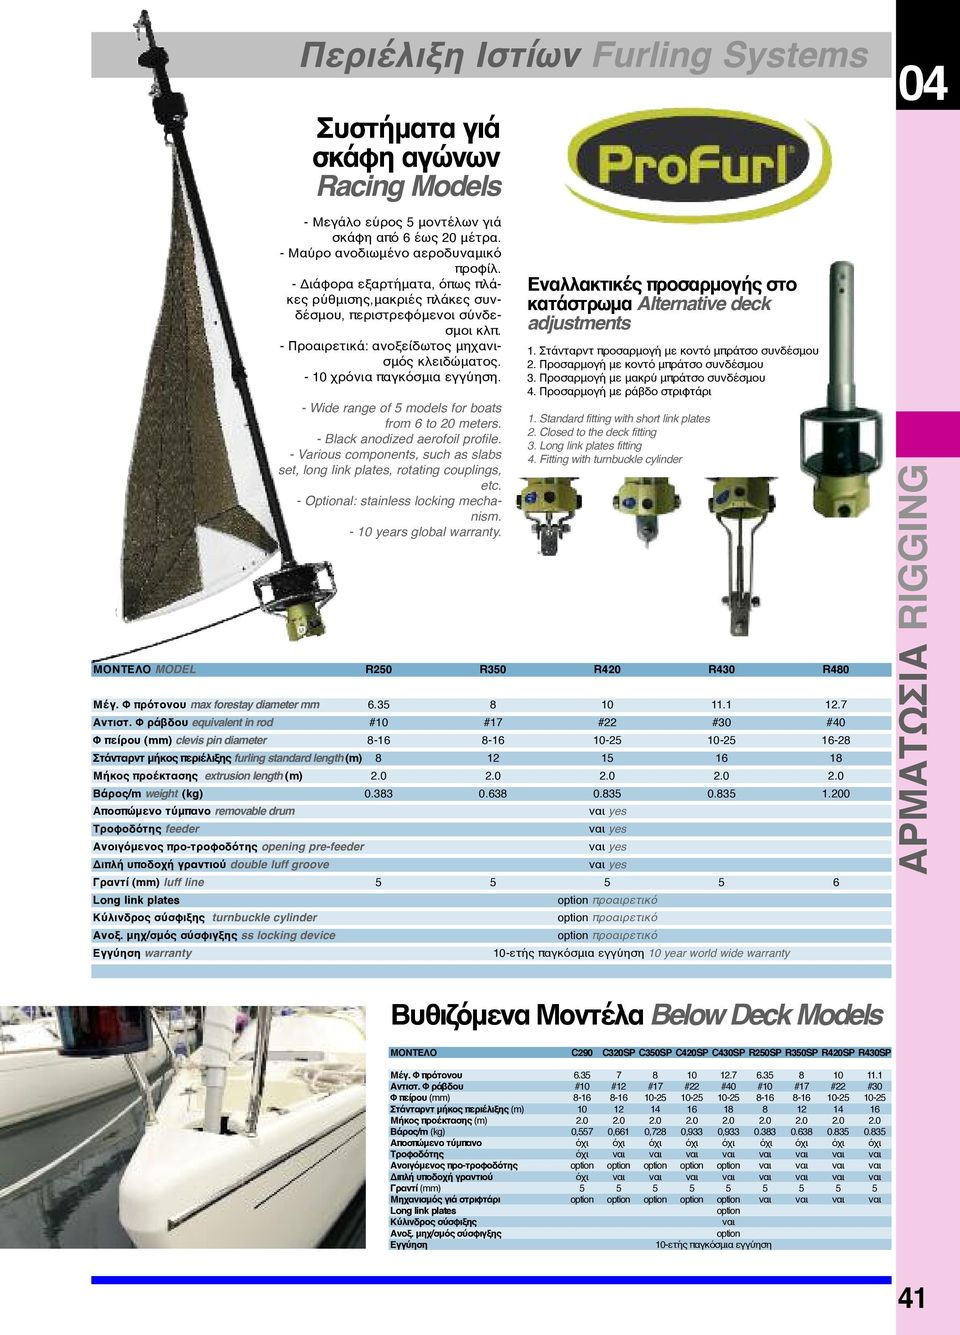 - Wide range of 5 models for boats from 6 to 20 meters. - Black anodized aerofoil profile. - Various components, such as slabs set, long link plates, rotating couplings, etc.